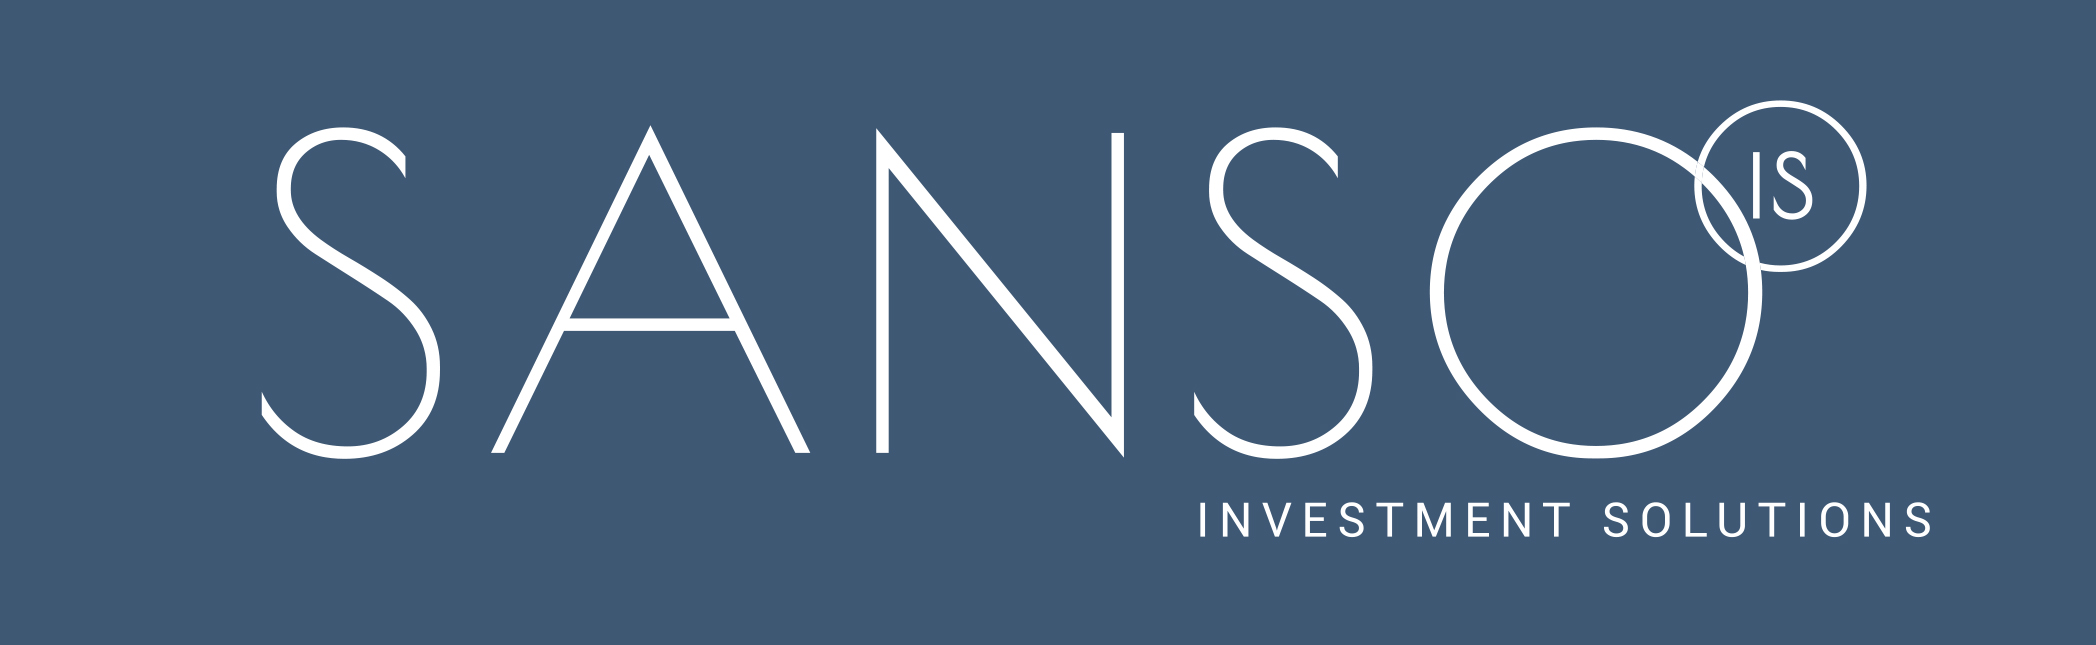 SANSO INVESTMENT SOLUTIONS